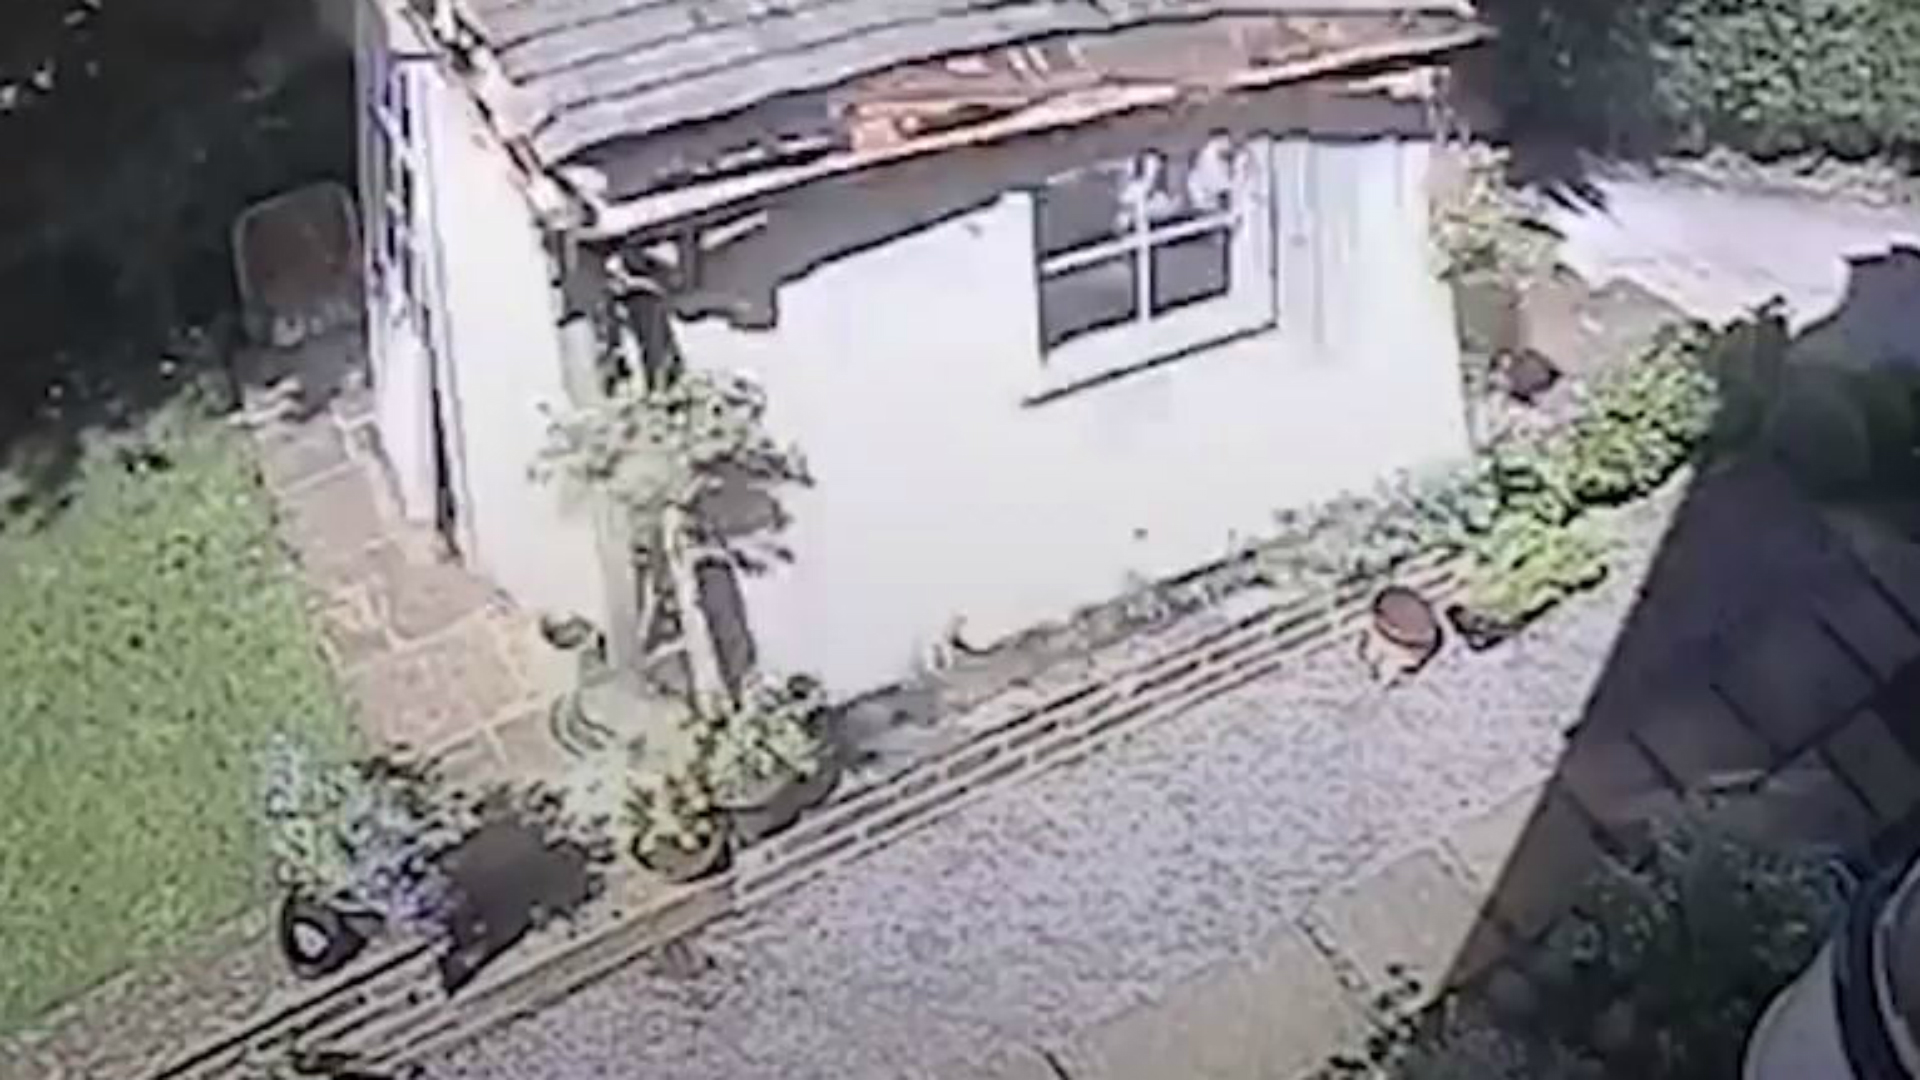 In Video Explosion Destroys Garden Shed From Kidderminster Shuttle